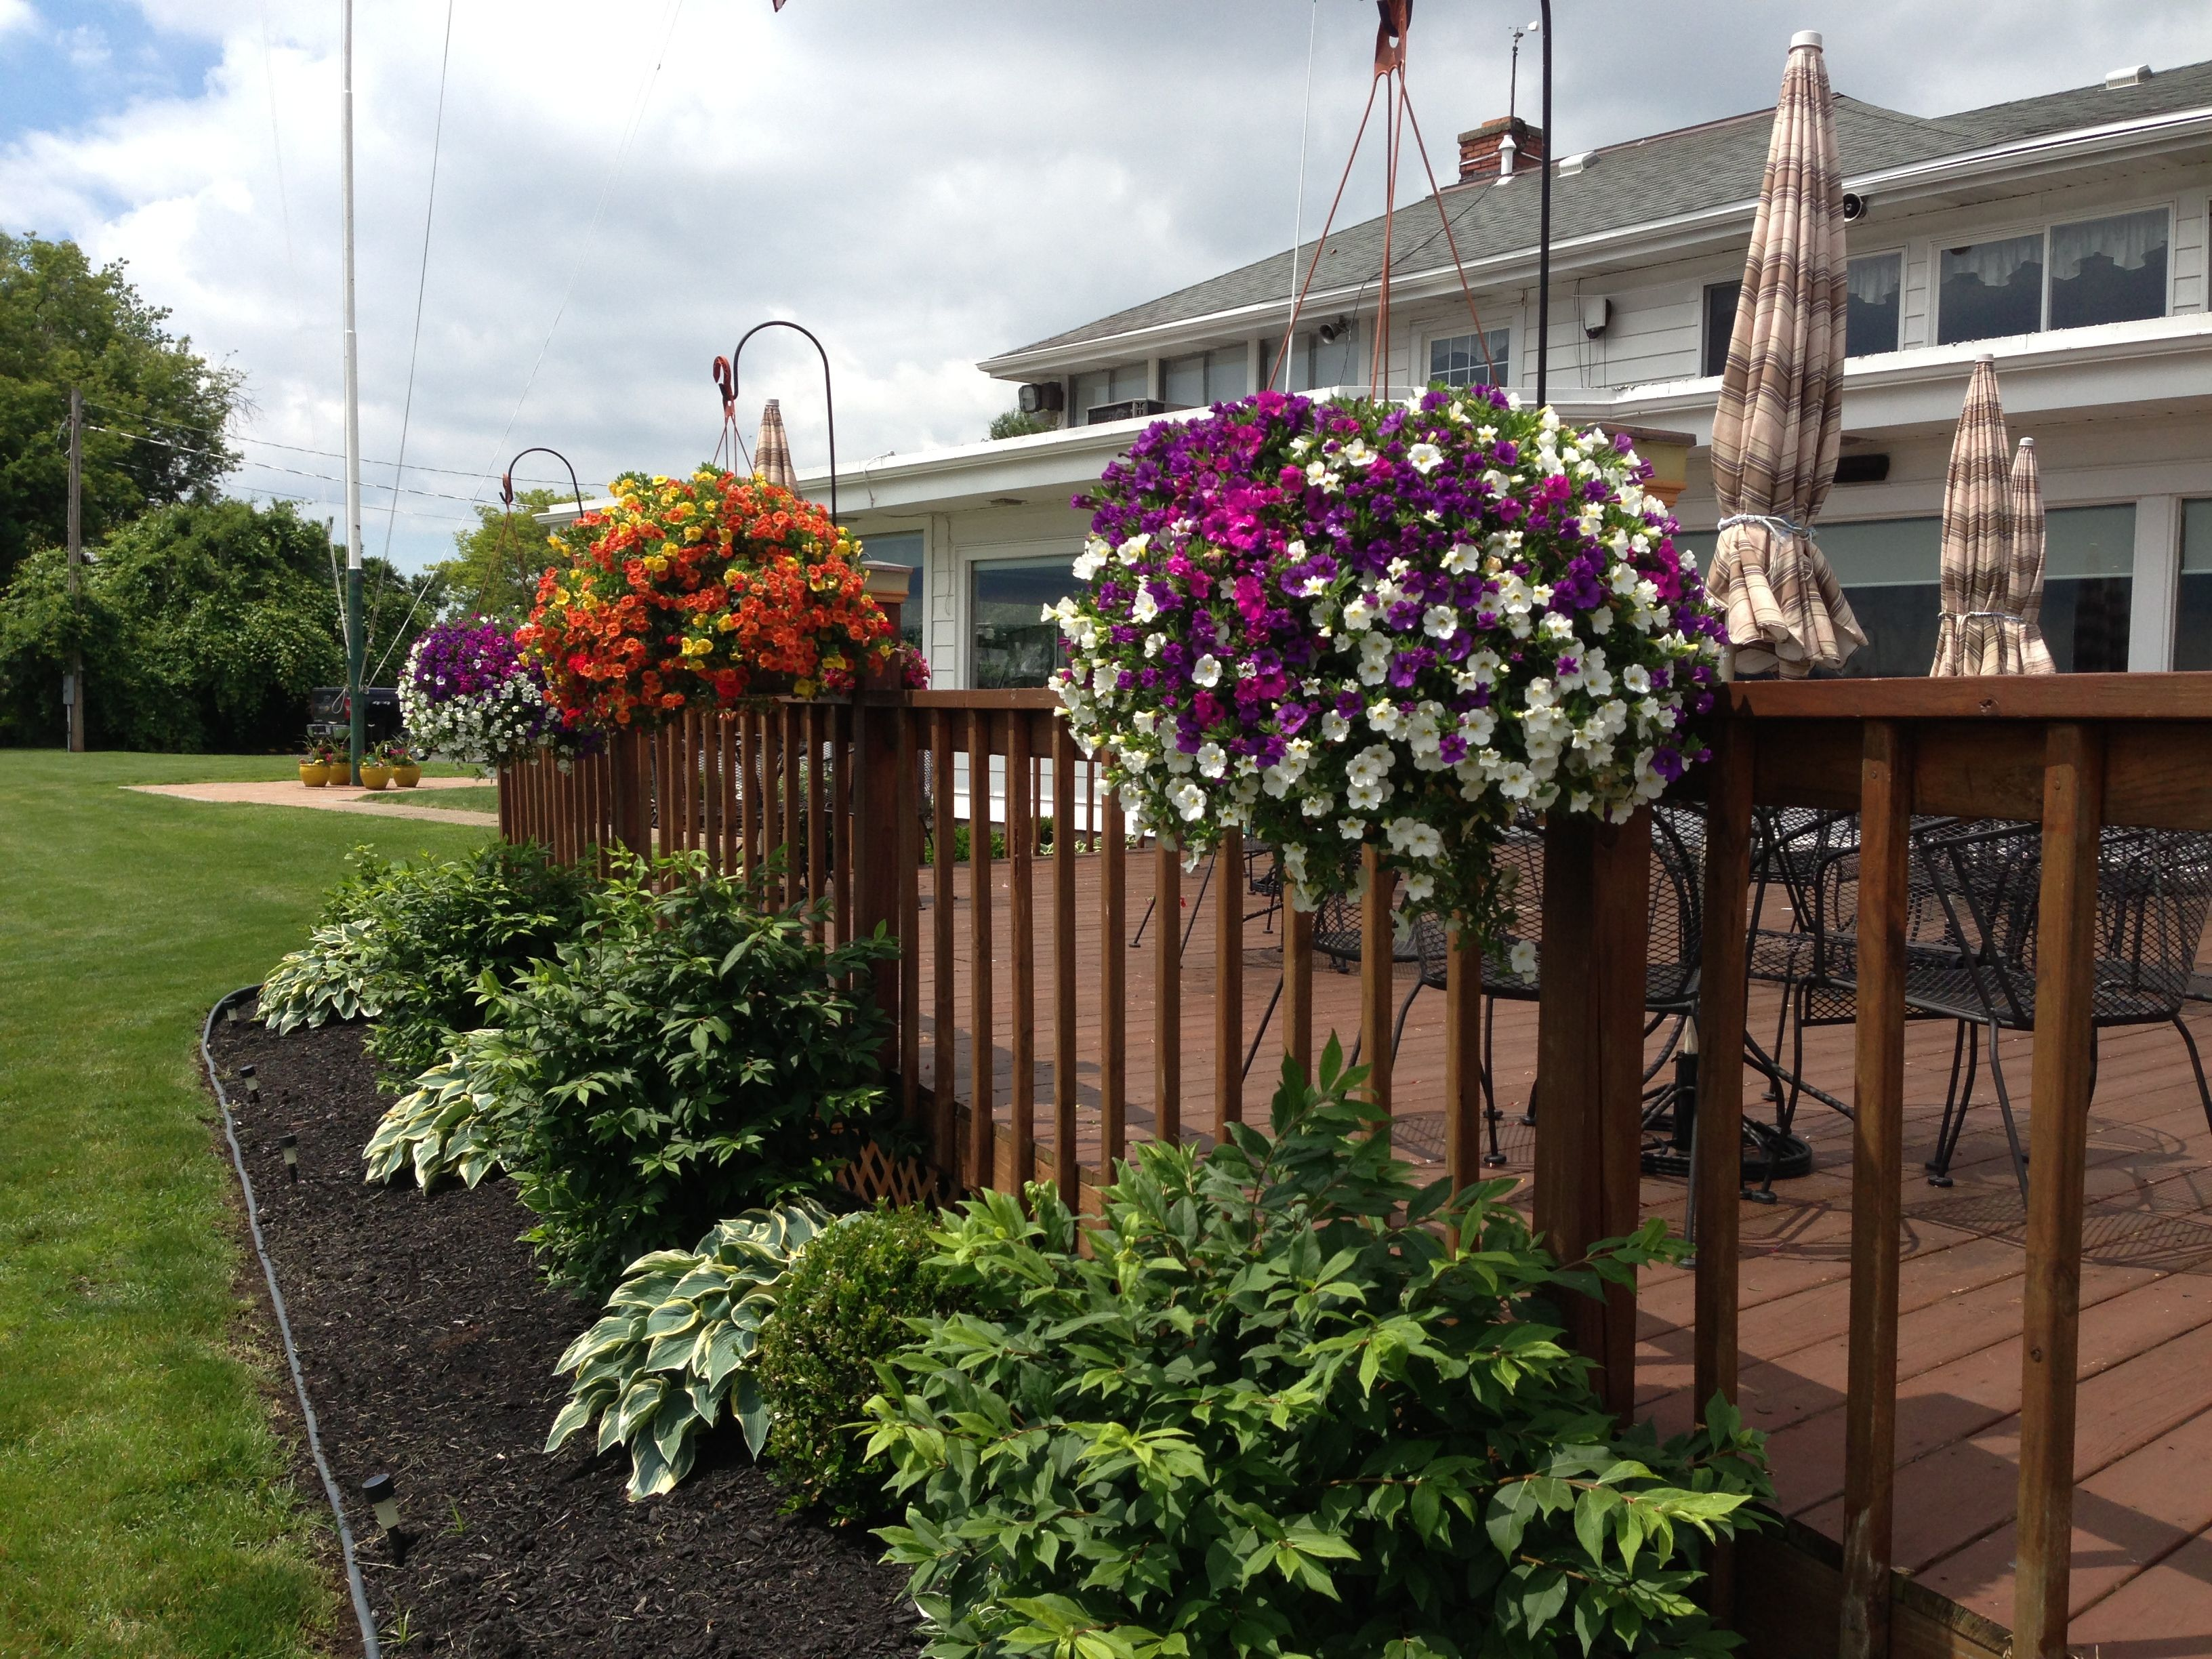 Shepherd Hooks And Hanging Baskets On Deck